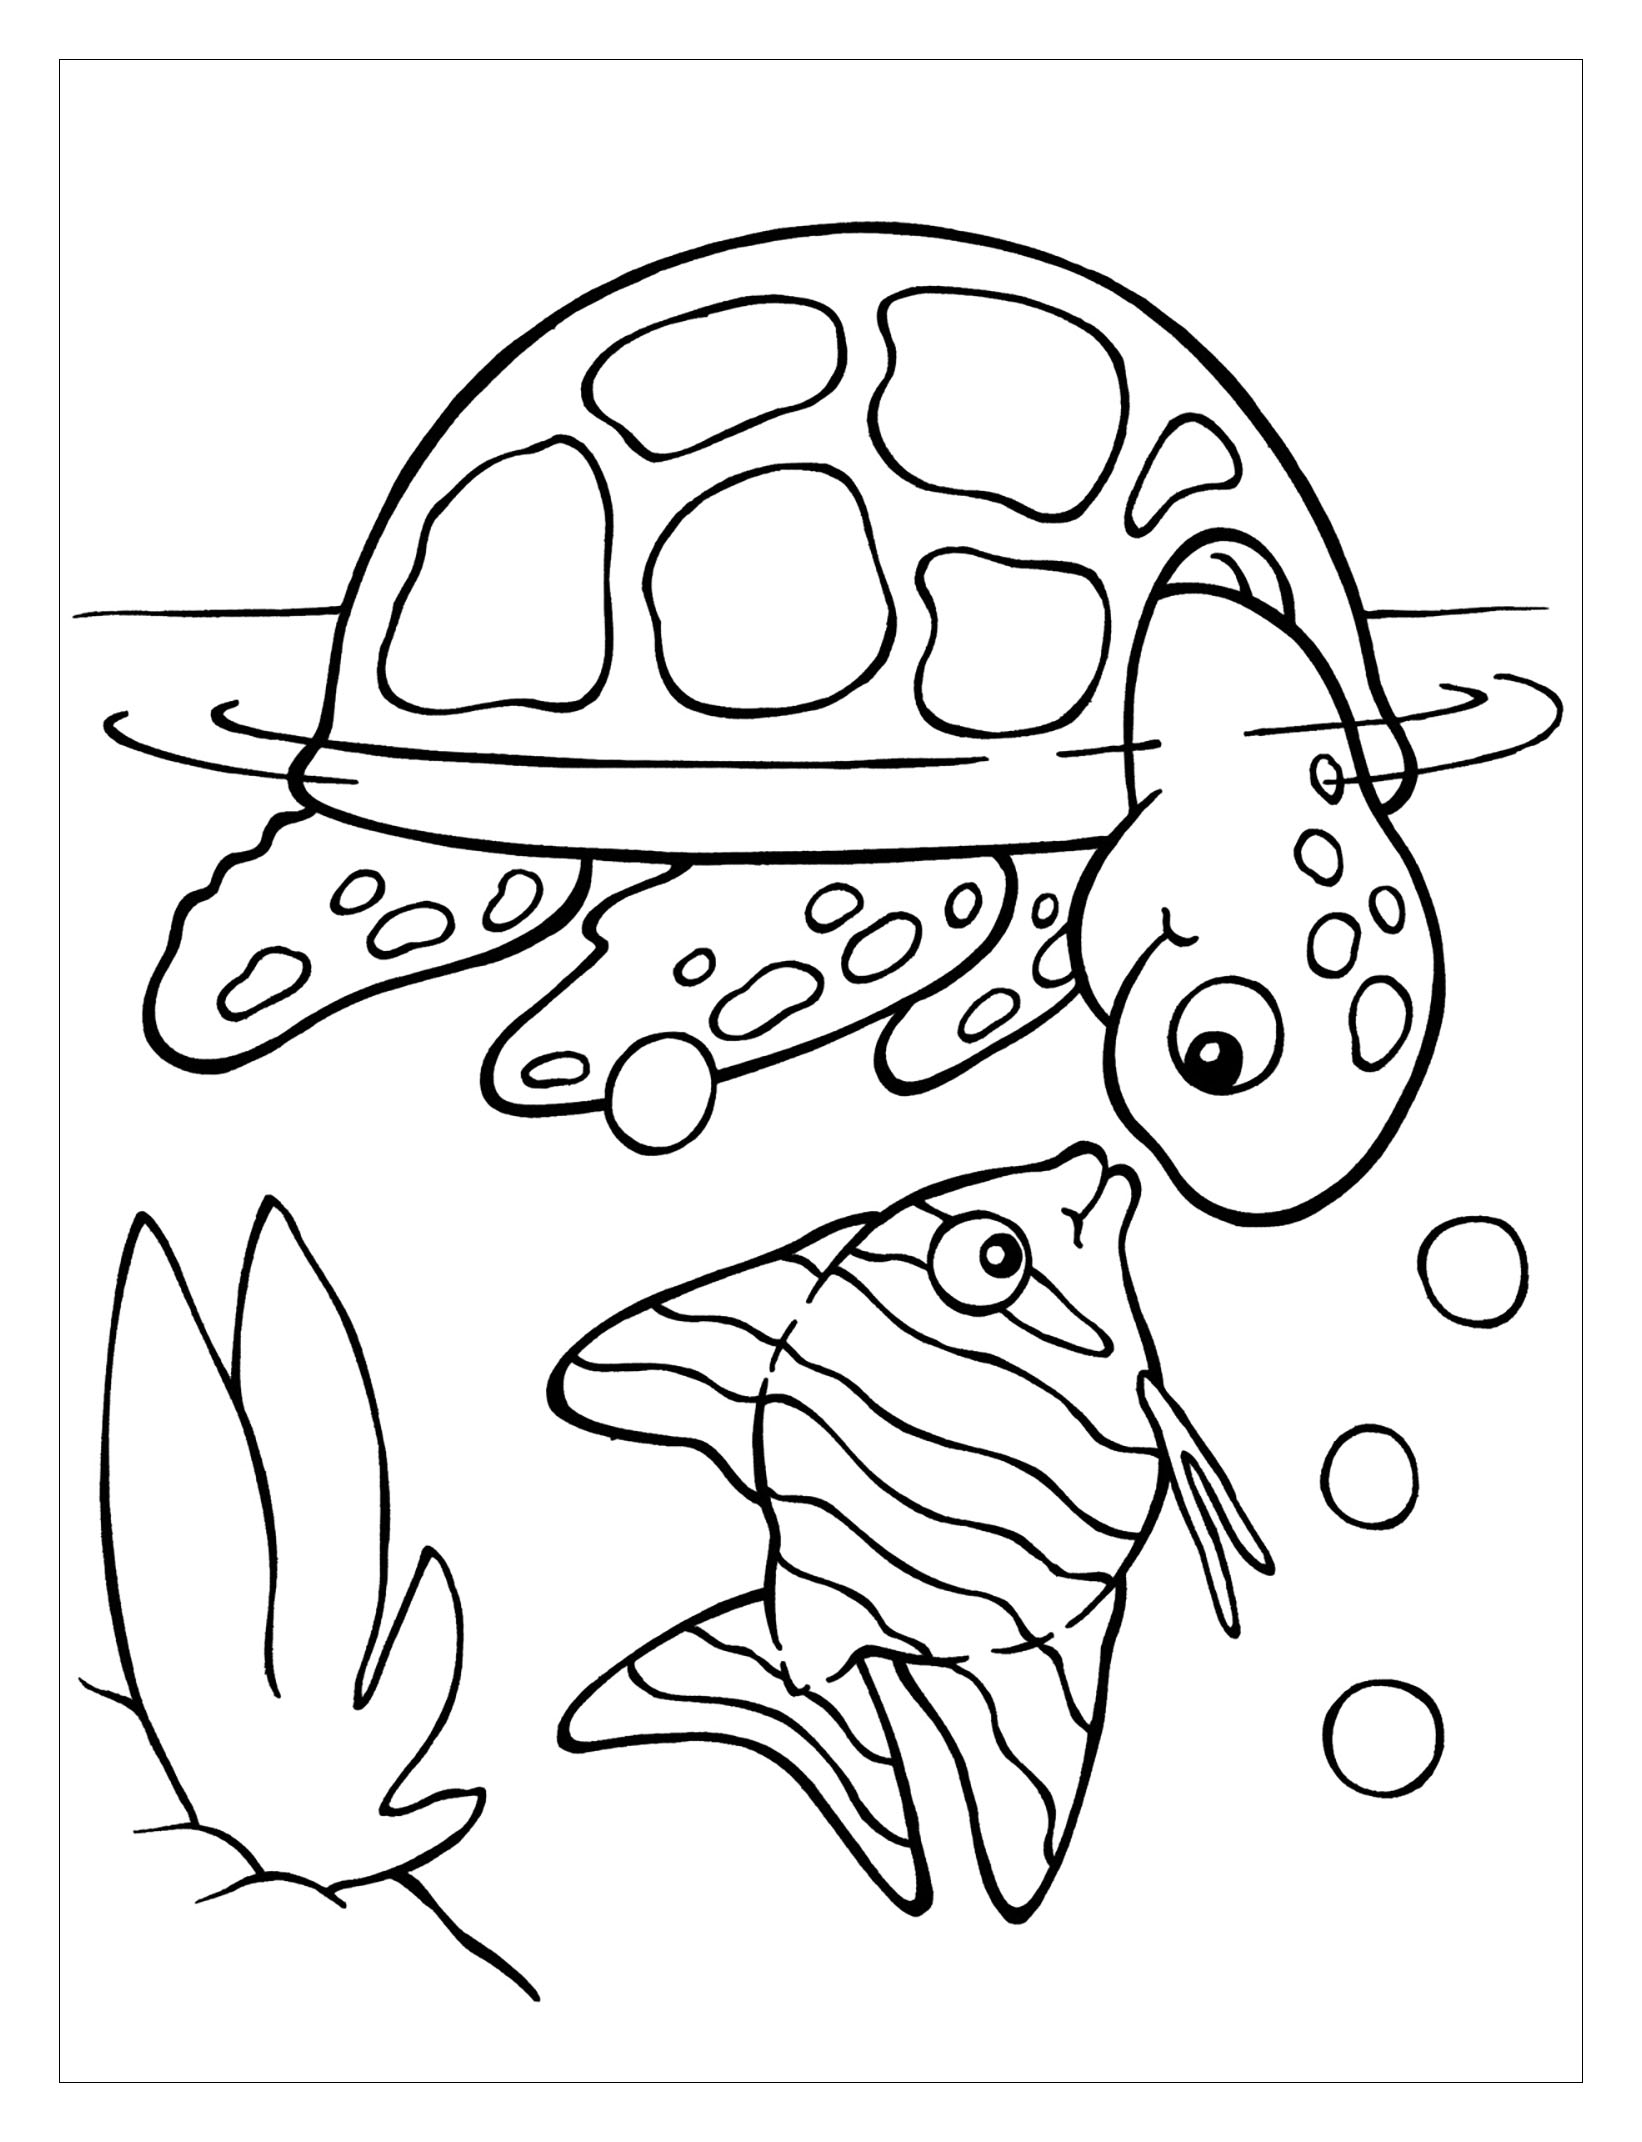 coloring sheet turtle box turtle drawing wallpapers gallery sheet coloring turtle